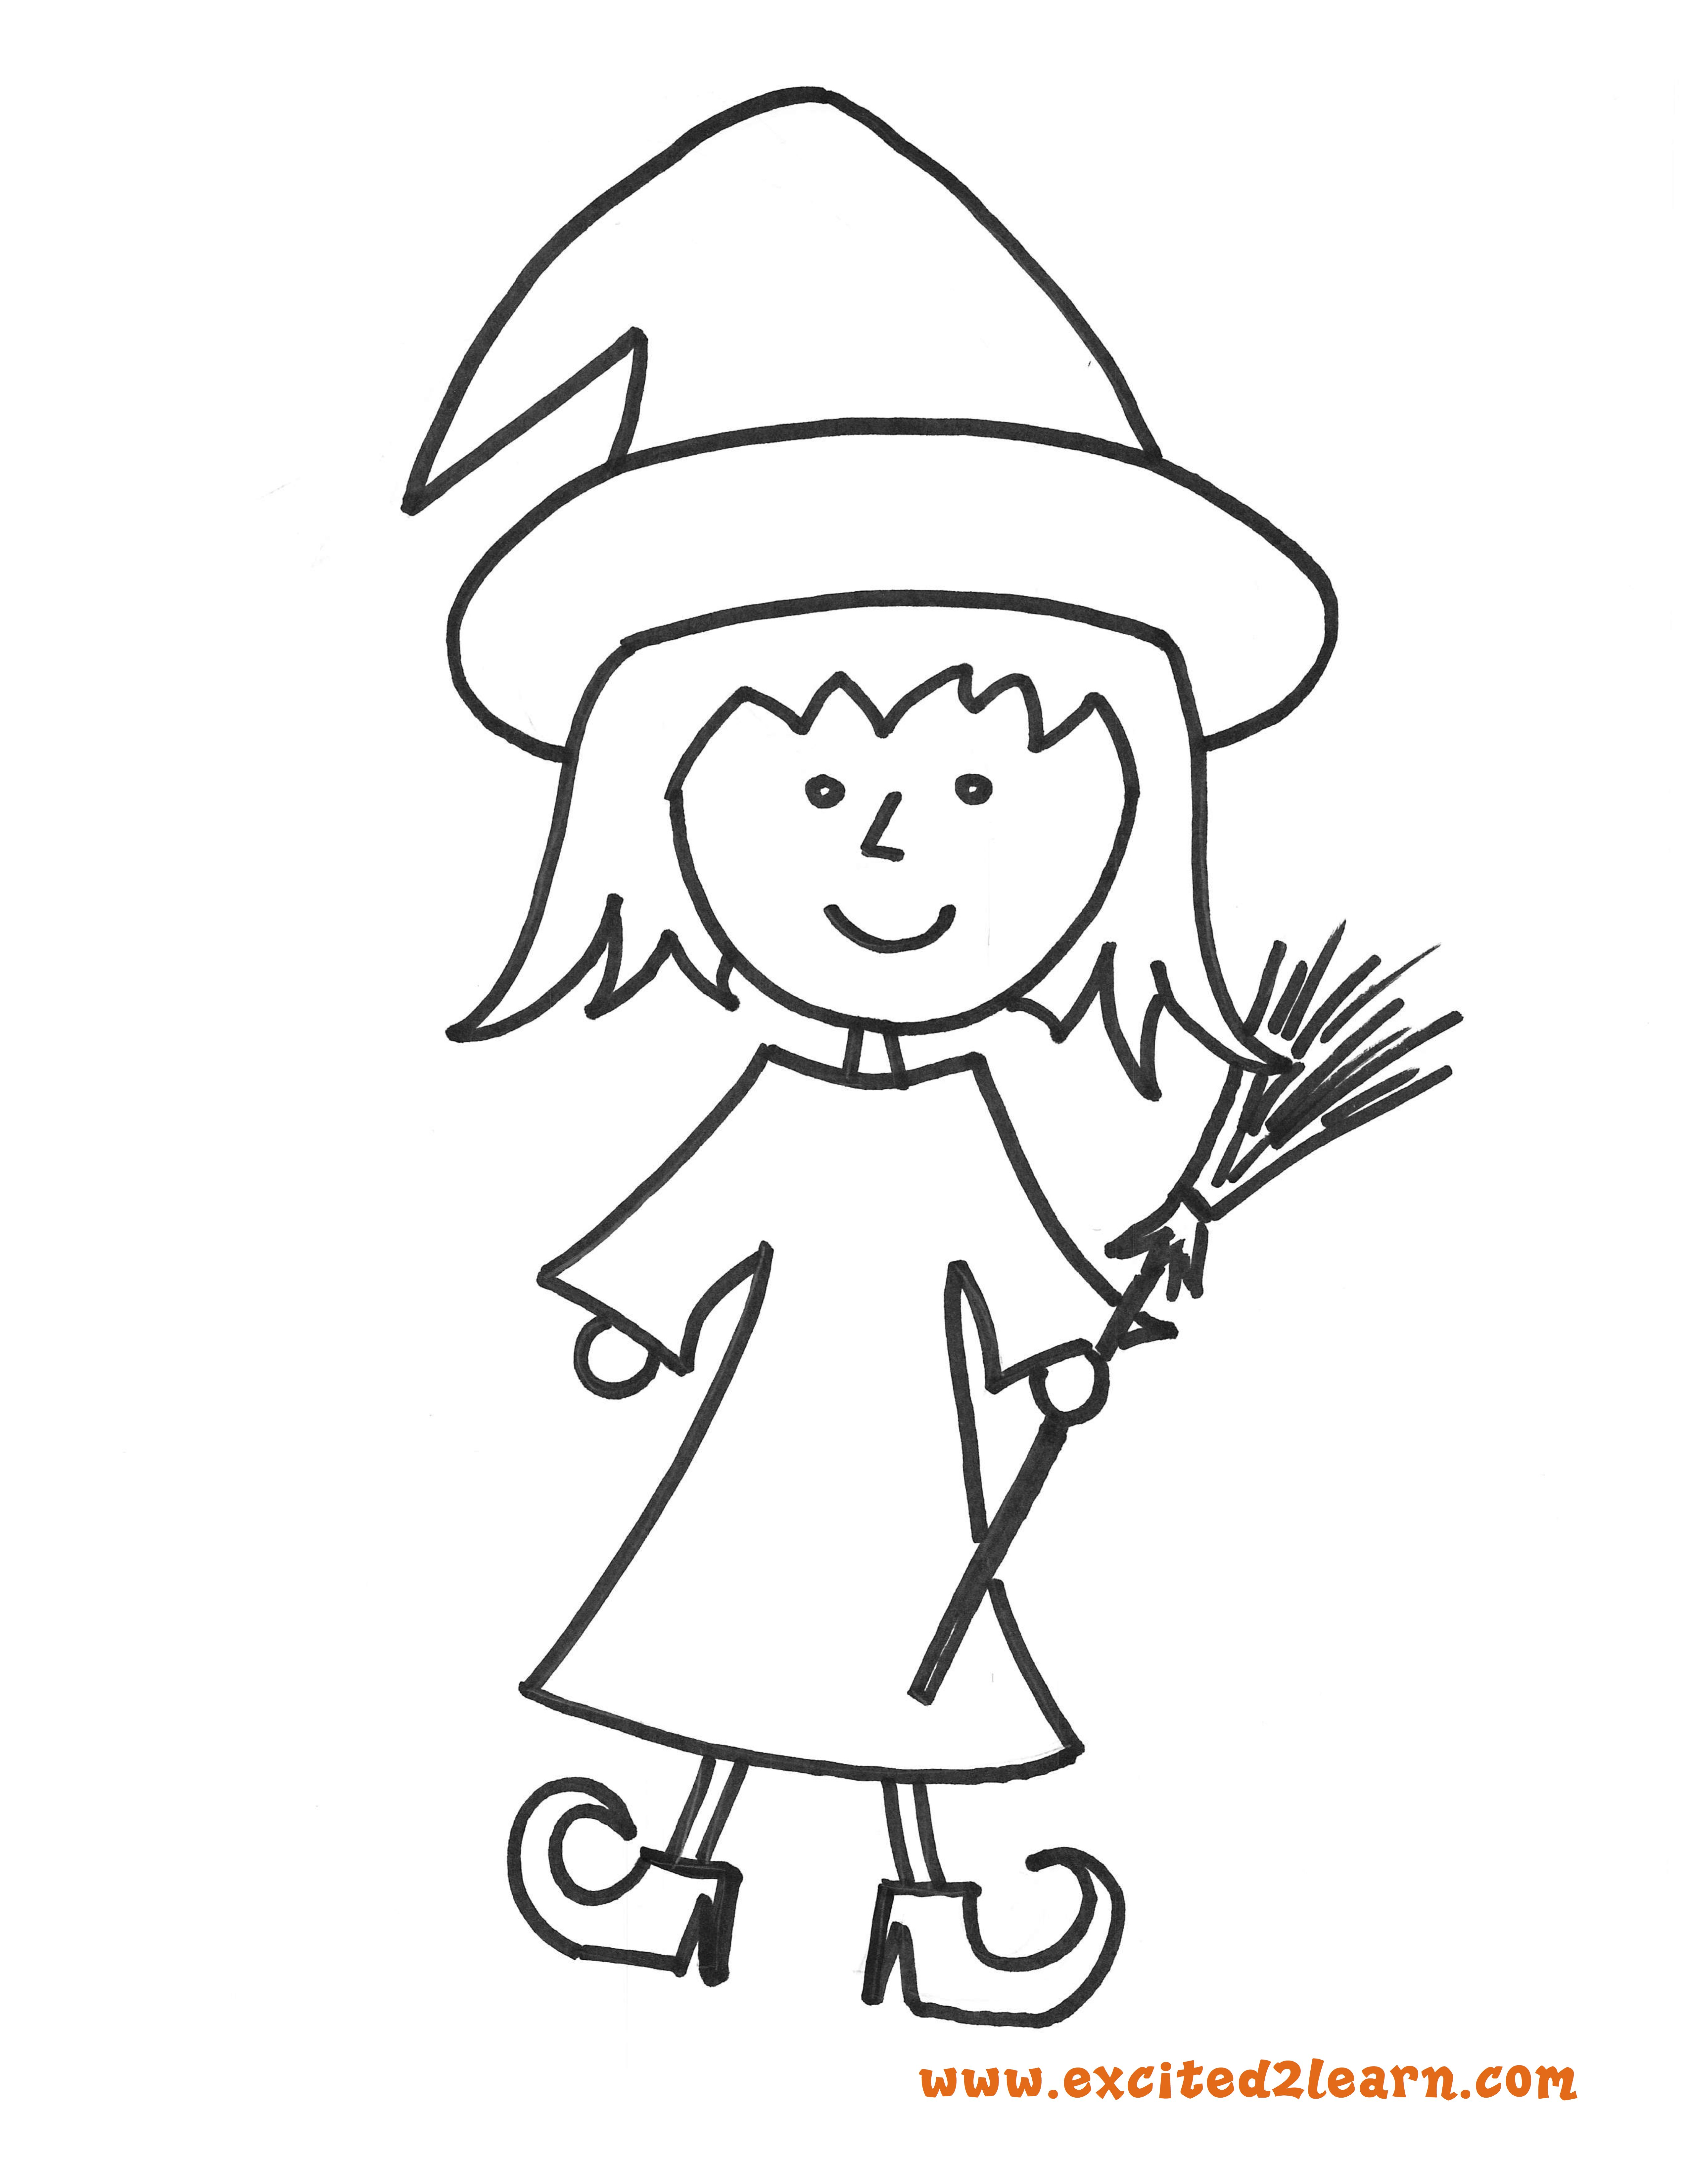 6 Free Halloween Coloring Pages Witch Bat Frankenstein Ghost